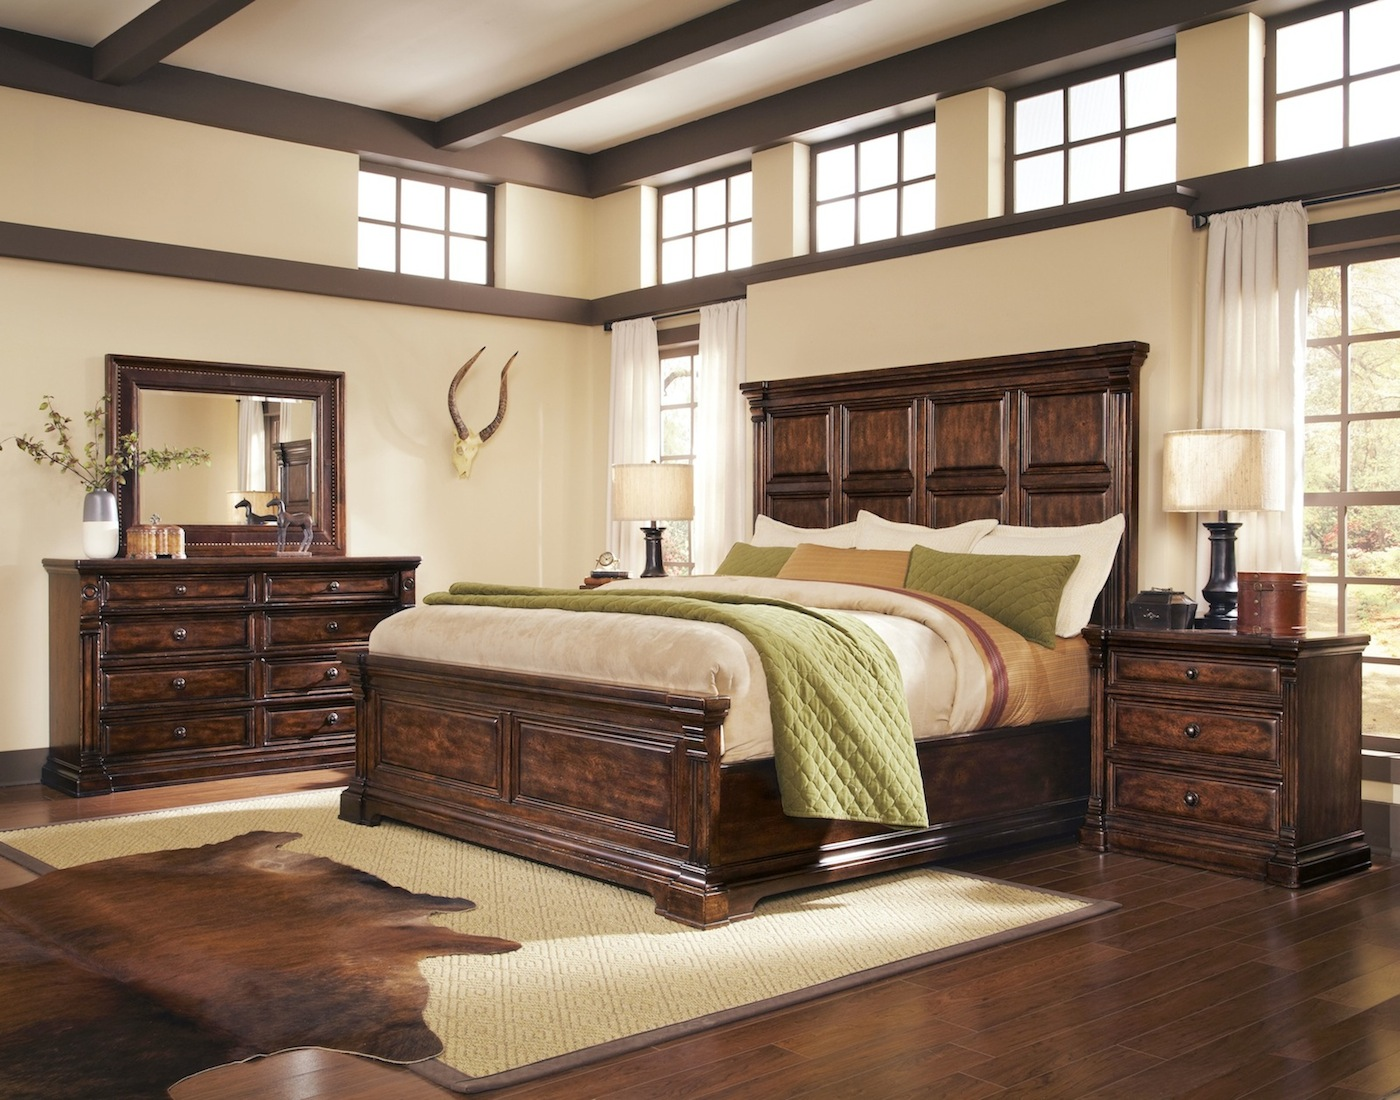 Whiskey oak rustic inspired wooden panel bedroom set 205000 for 3 bedroom set